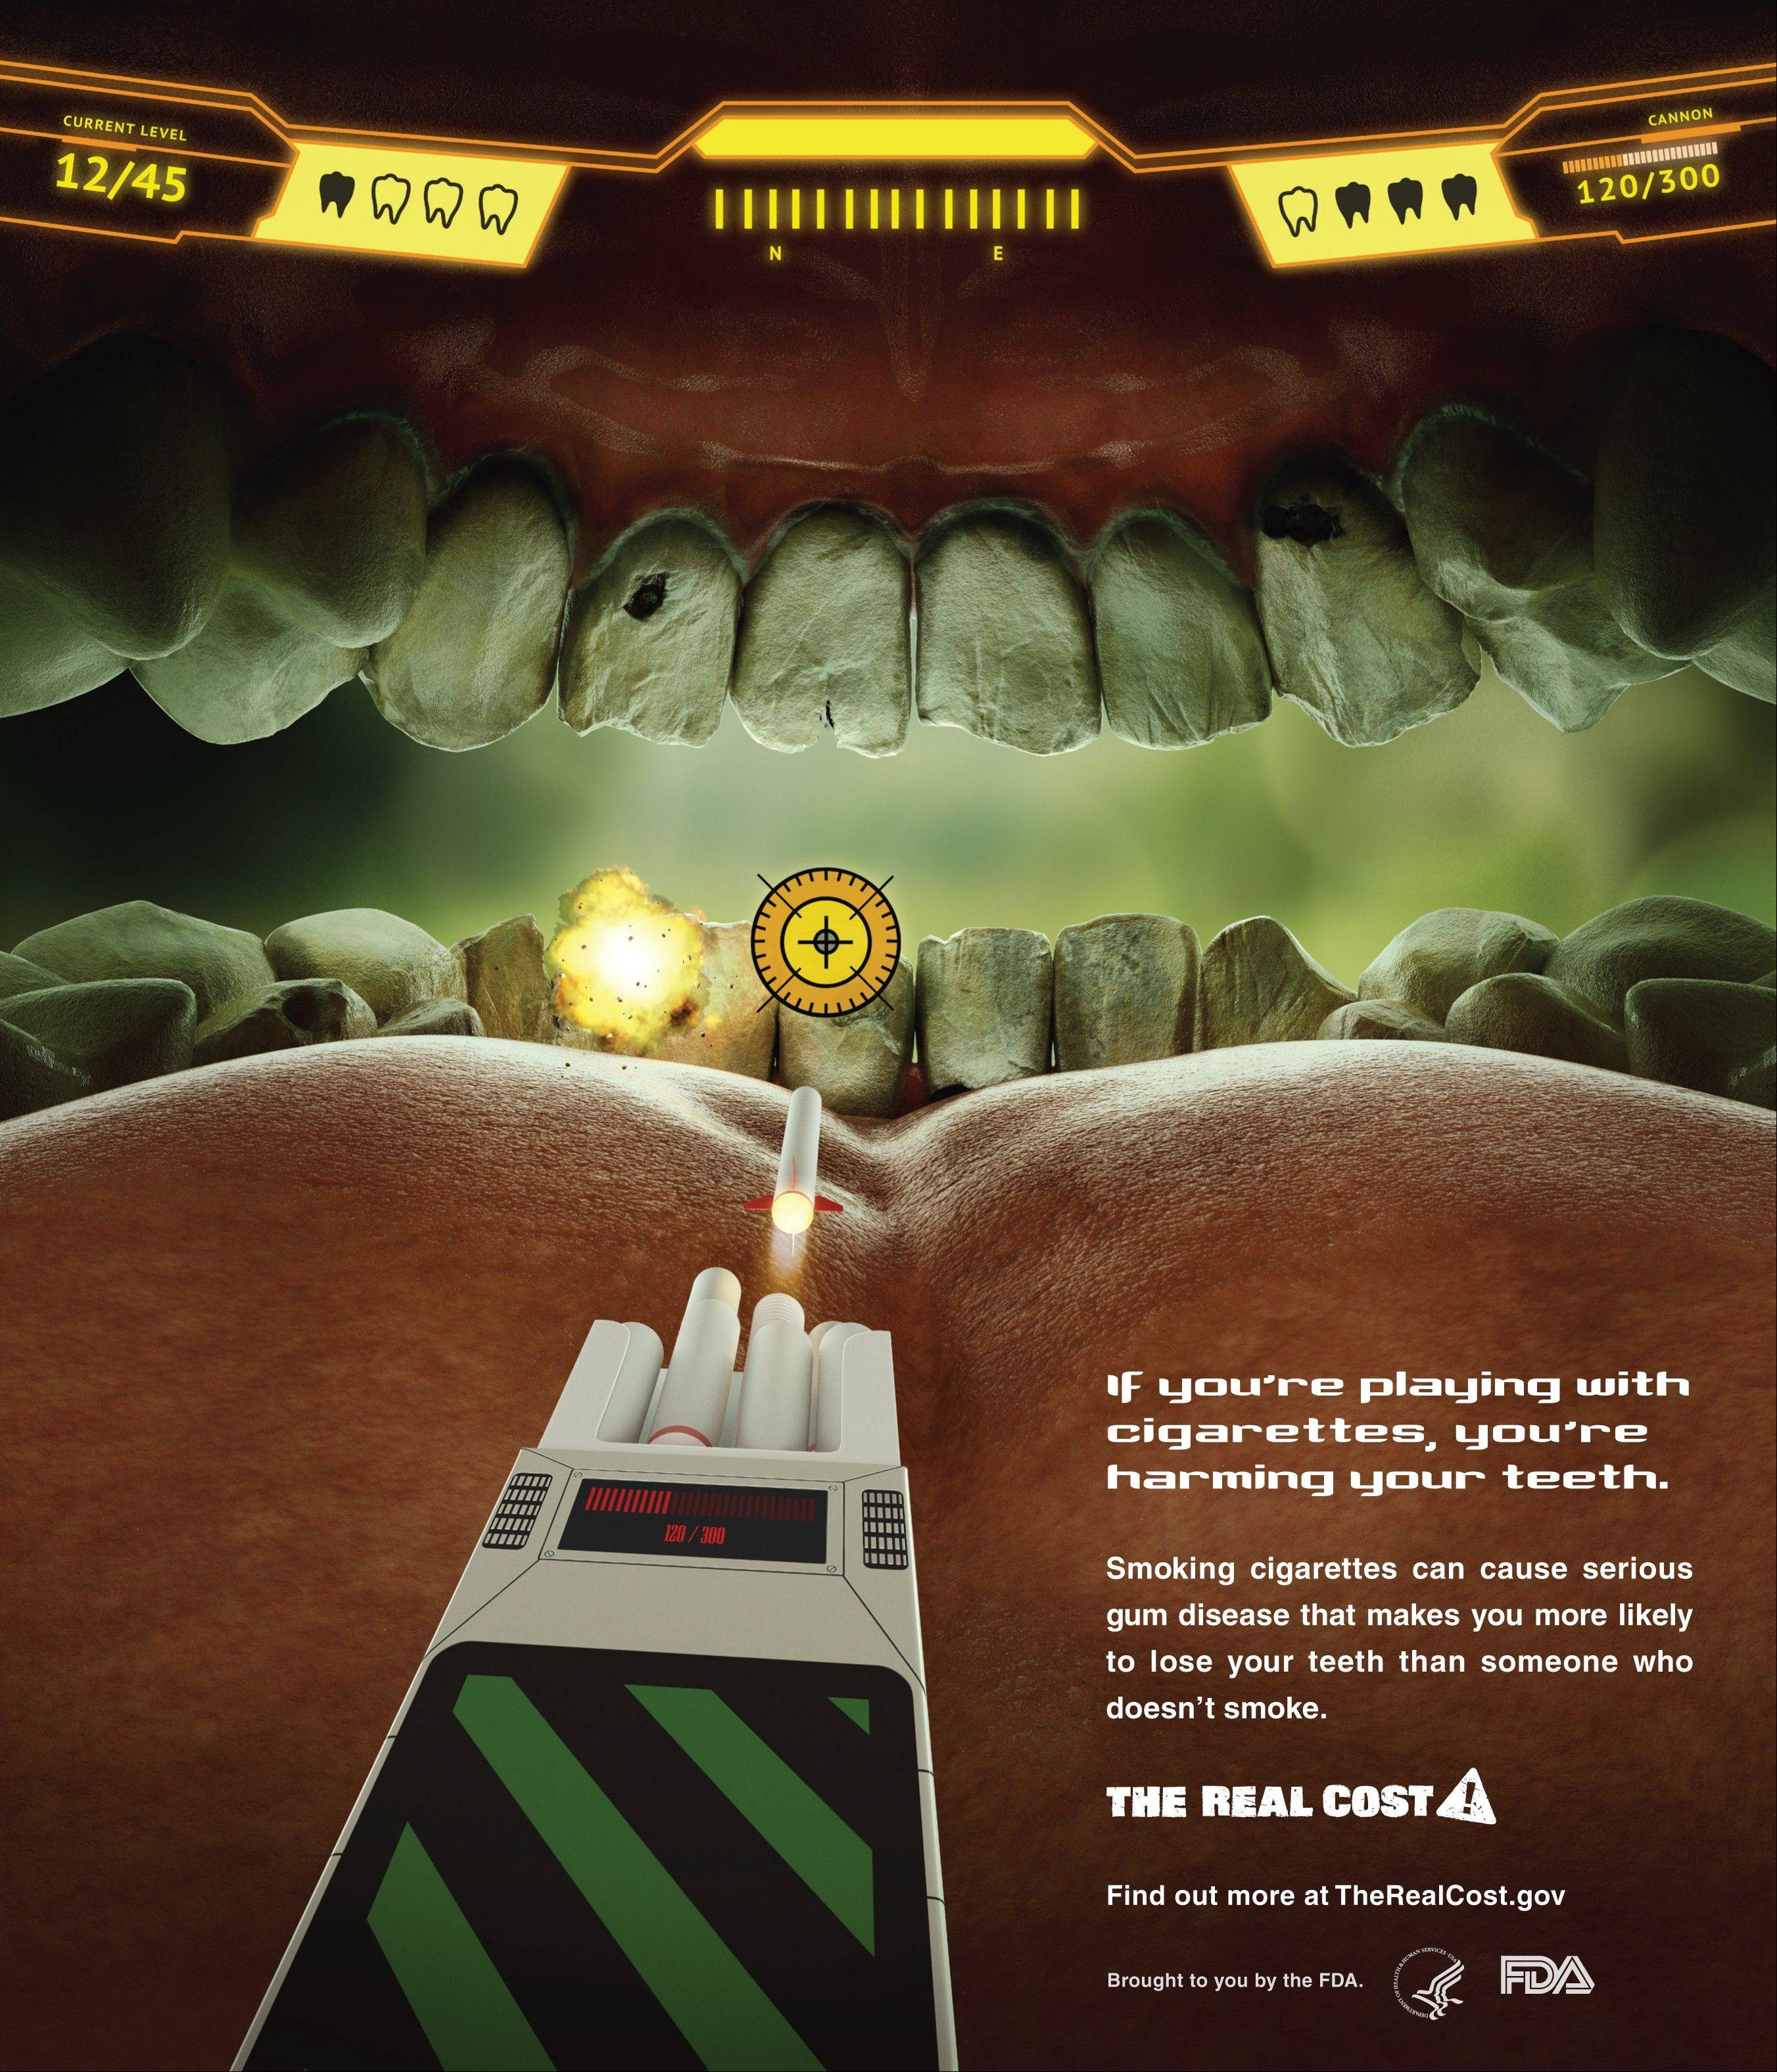 The Food and Drug Administration's new ad campaign features yellow teeth to show the costs associated with cigarette smoking.